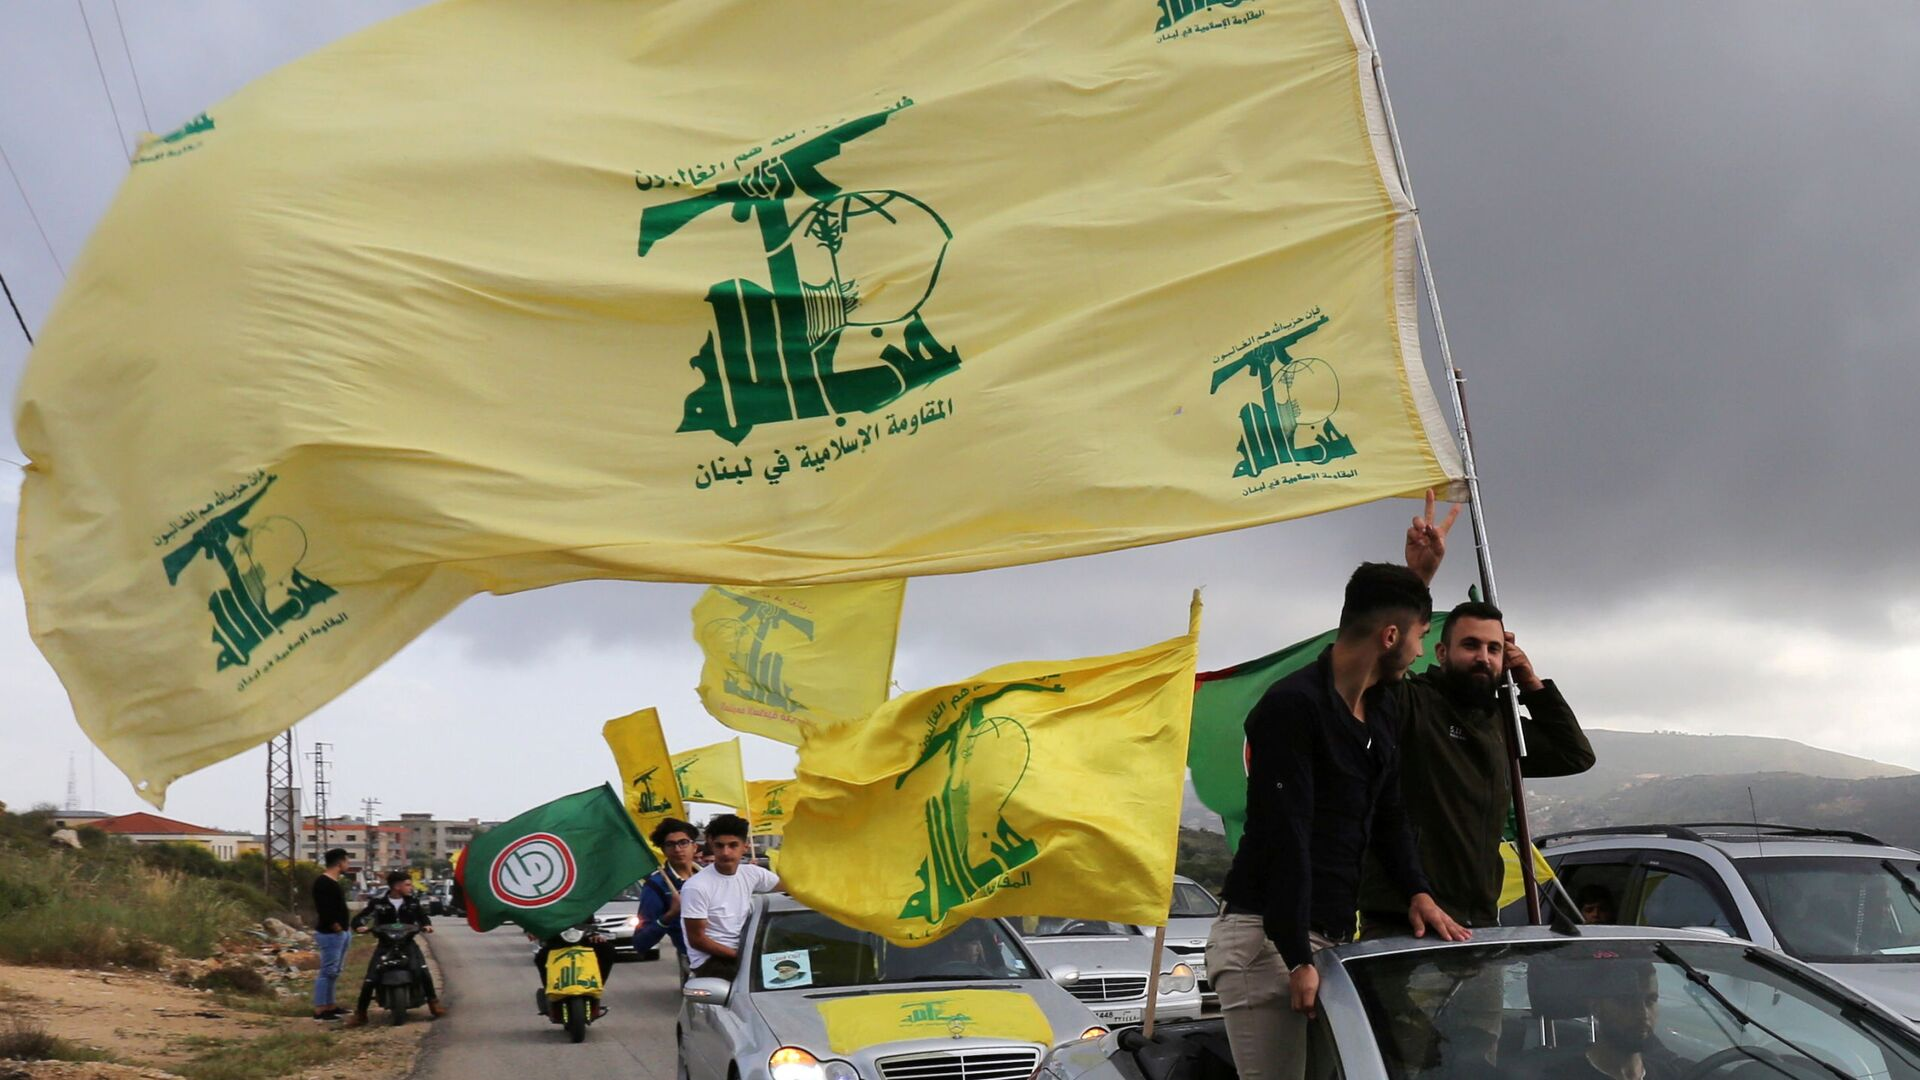 FILE PHOTO: A supporter of Lebanon's Hezbollah gestures as he holds a Hezbollah flag in Marjayoun, Lebanon May 7, 2018. - Sputnik International, 1920, 17.09.2021